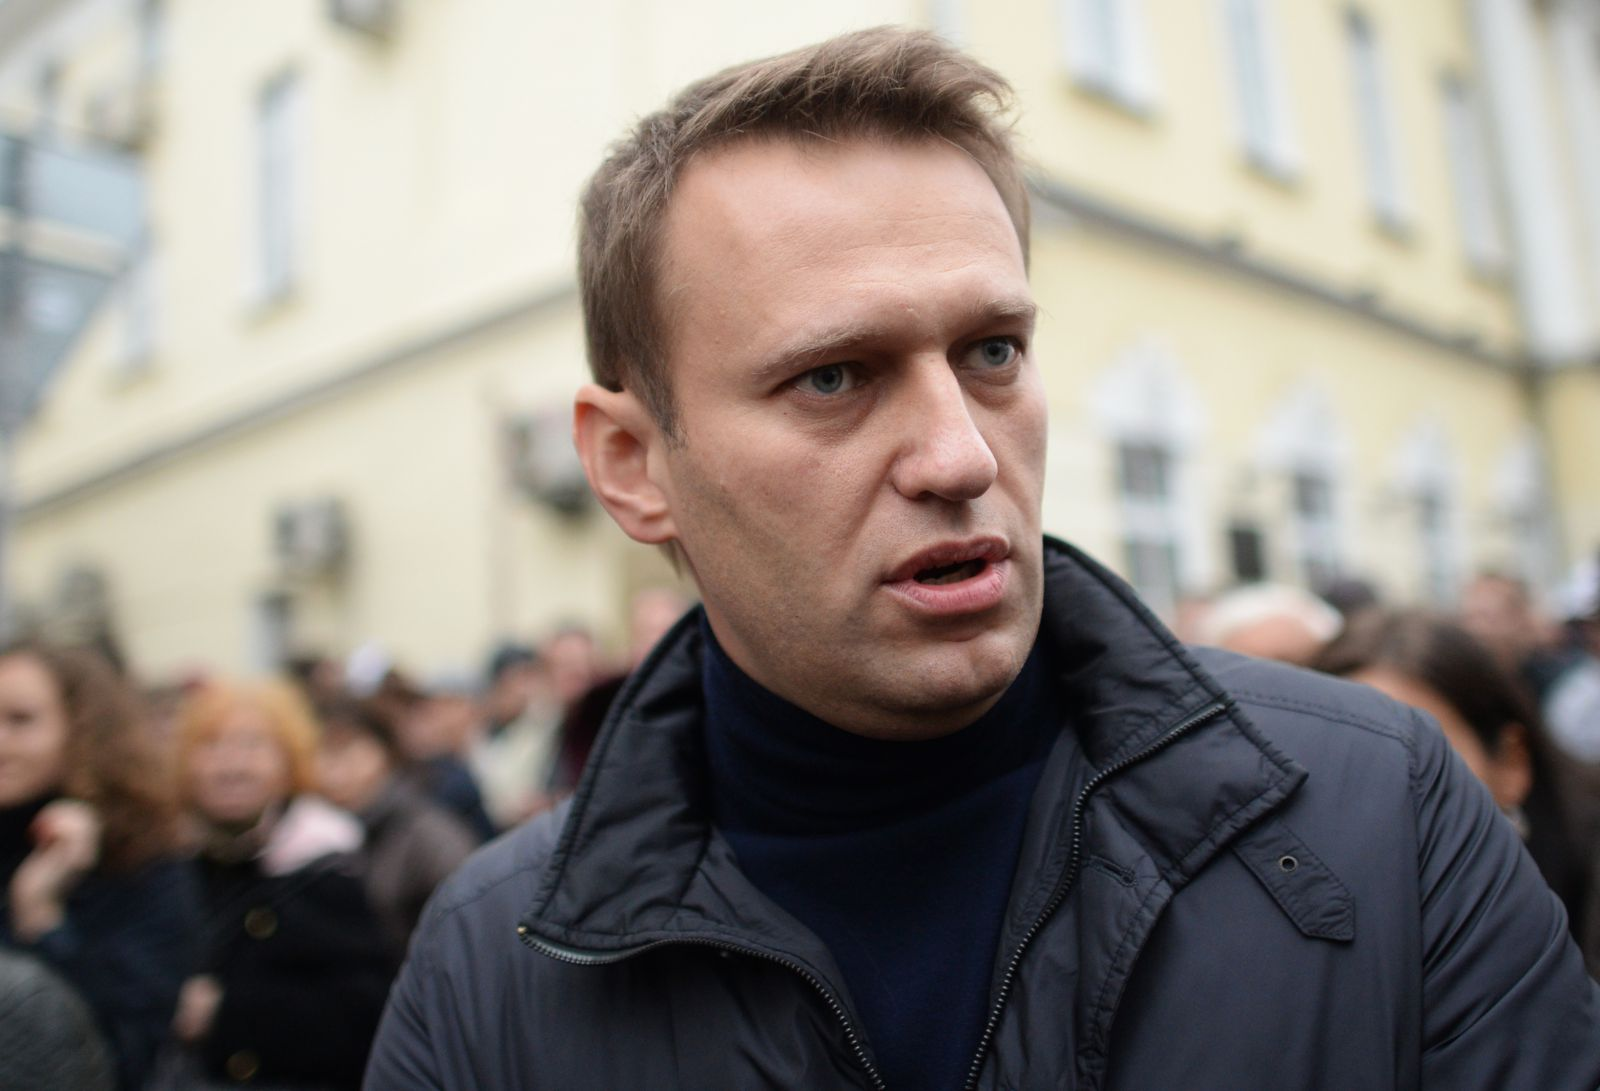 The US may impose Navalny-related sanctions on Kremlin